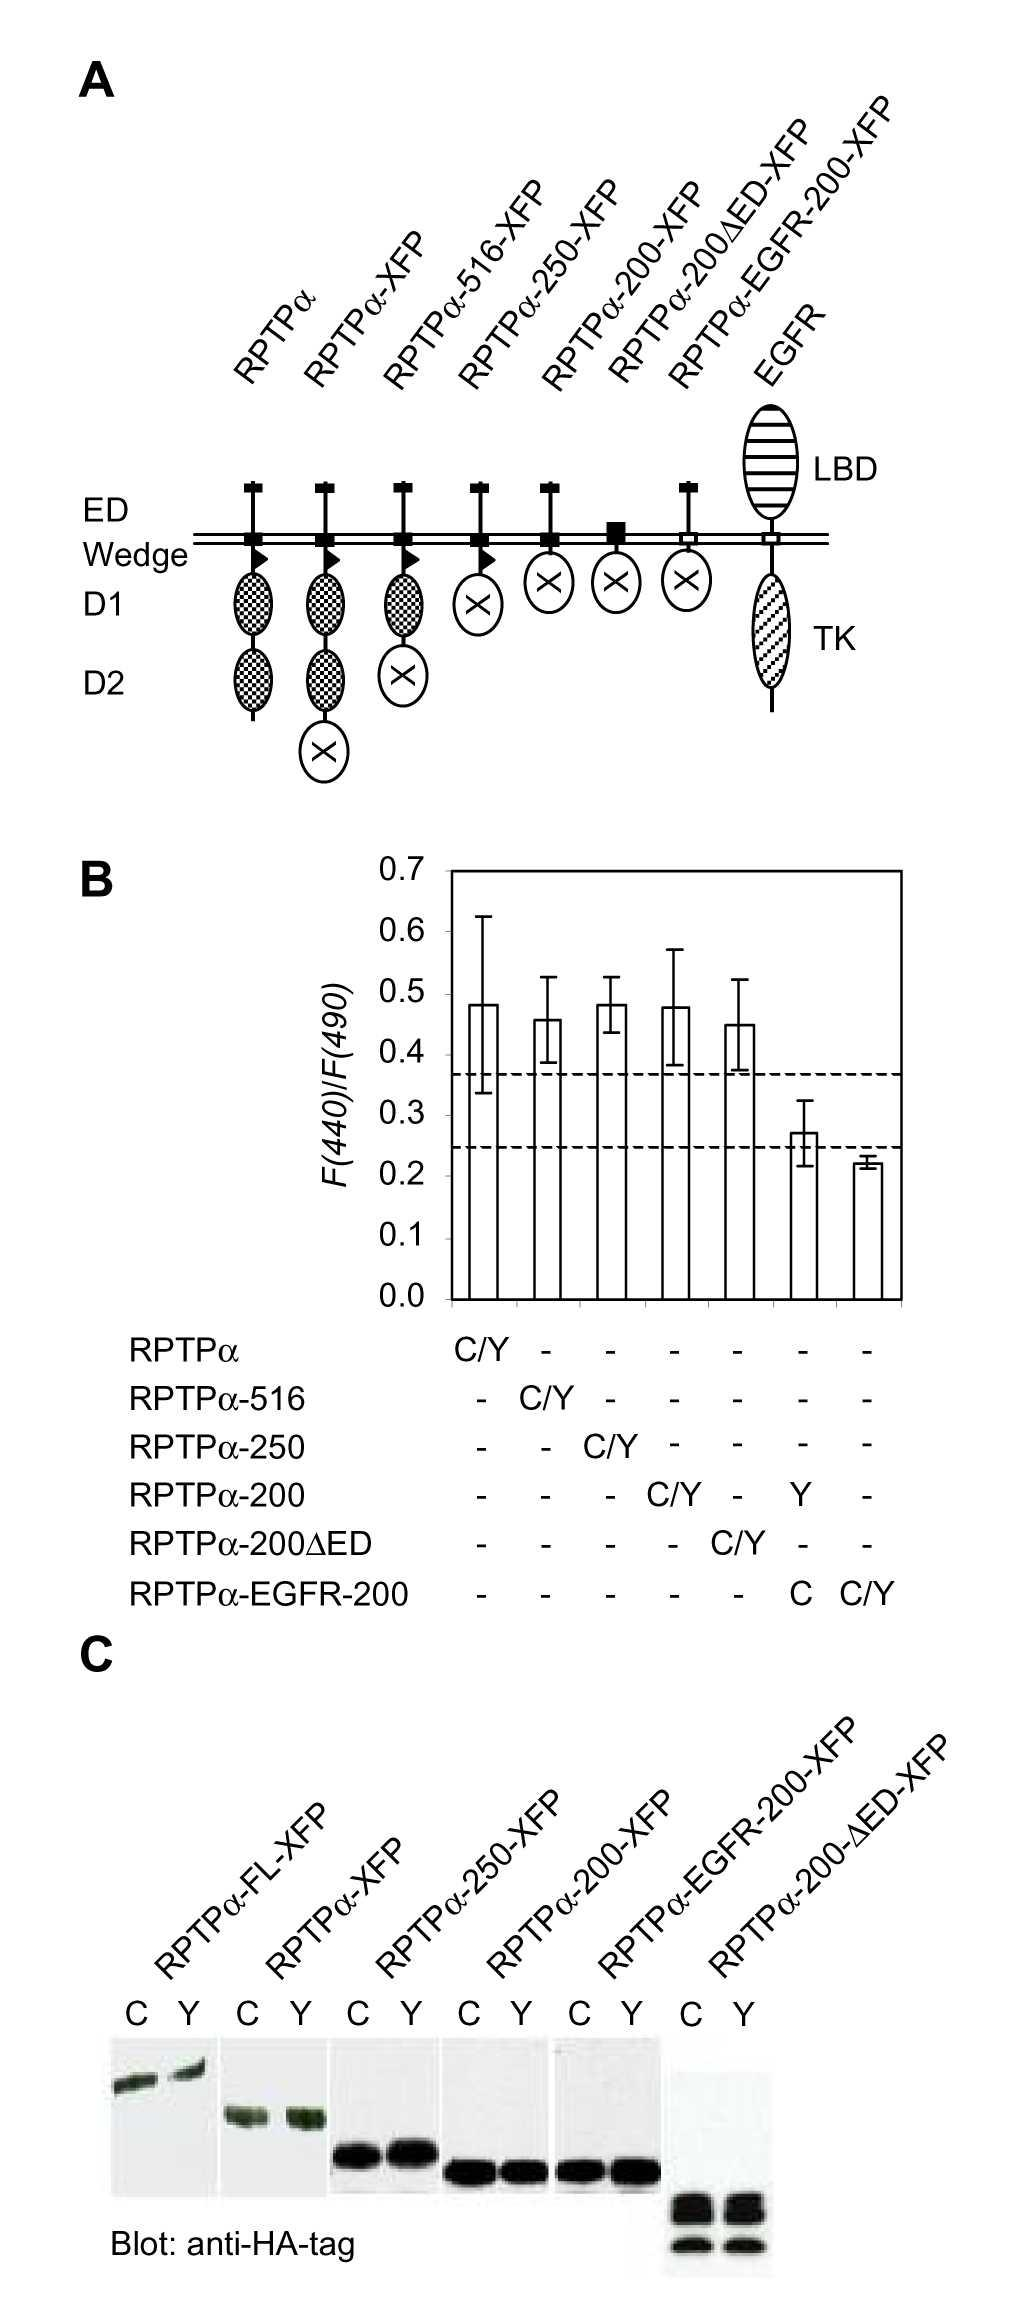 http://static-content.springer.com/image/art%3A10.1186%2F1471-2121-2-8/MediaObjects/12860_2001_Article_12_Fig5_HTML.jpg